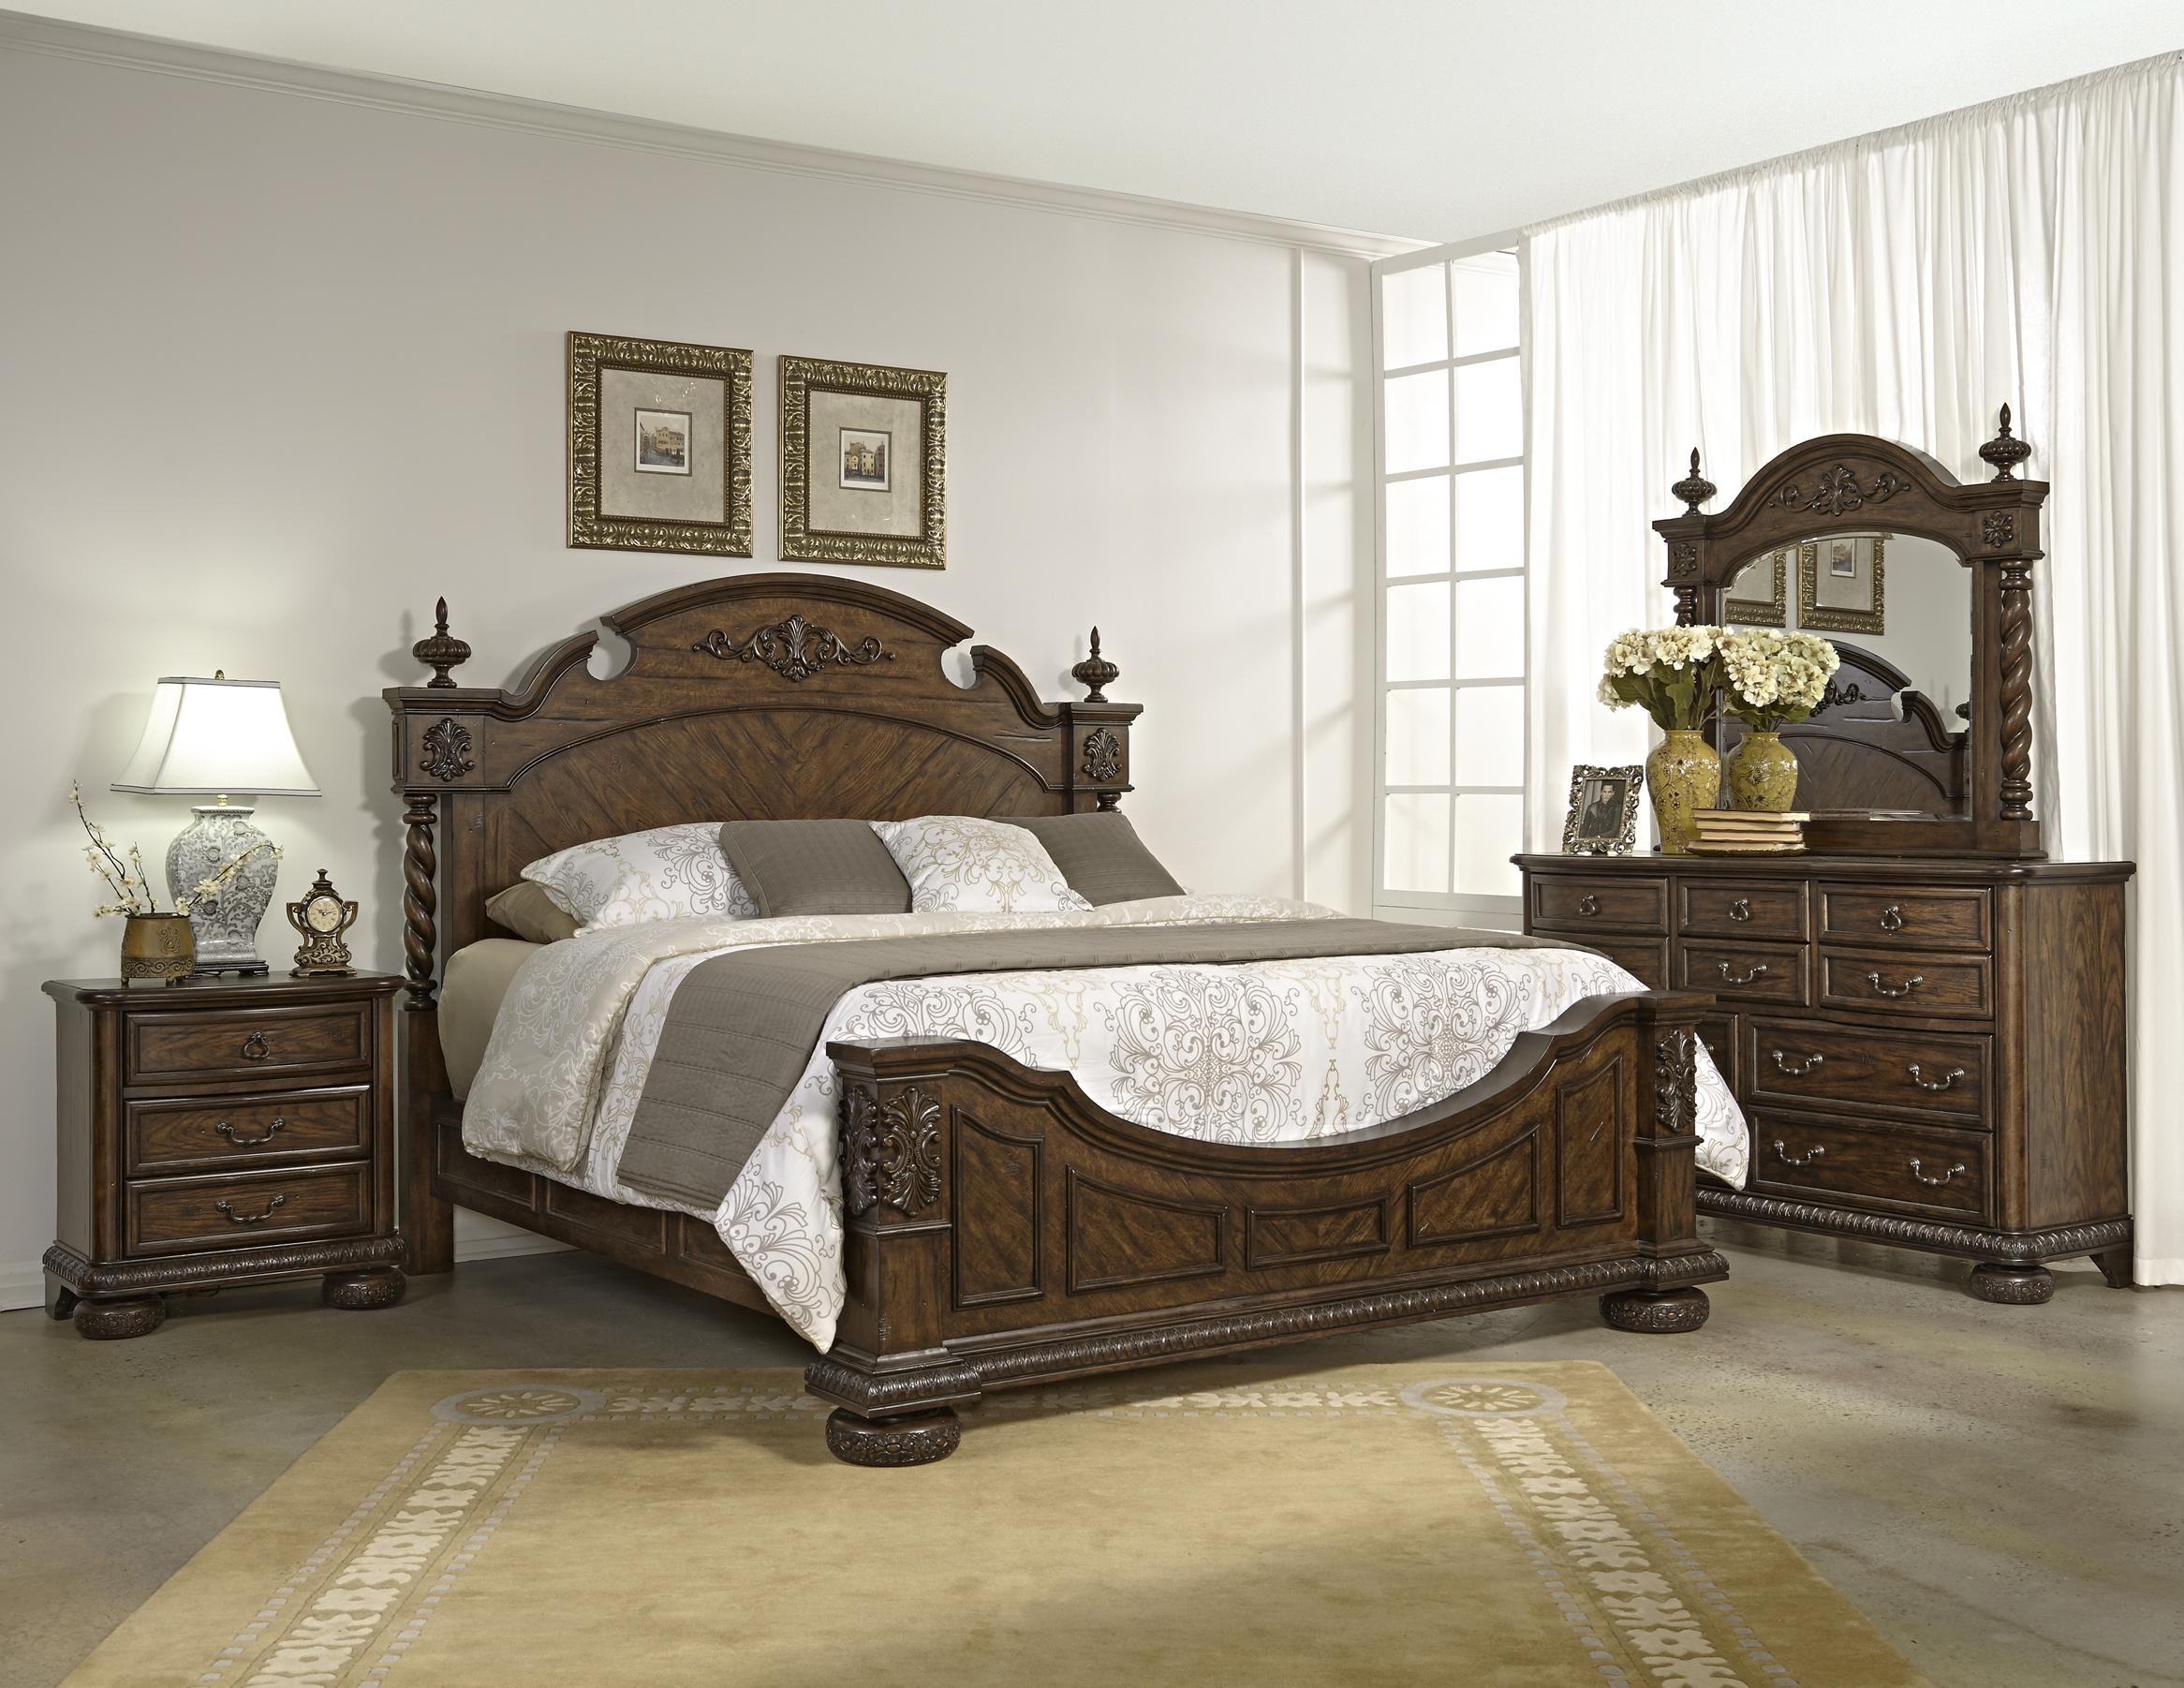 Folio 21 Yorkshire Traditional King Panel Bed - Story & Lee ...